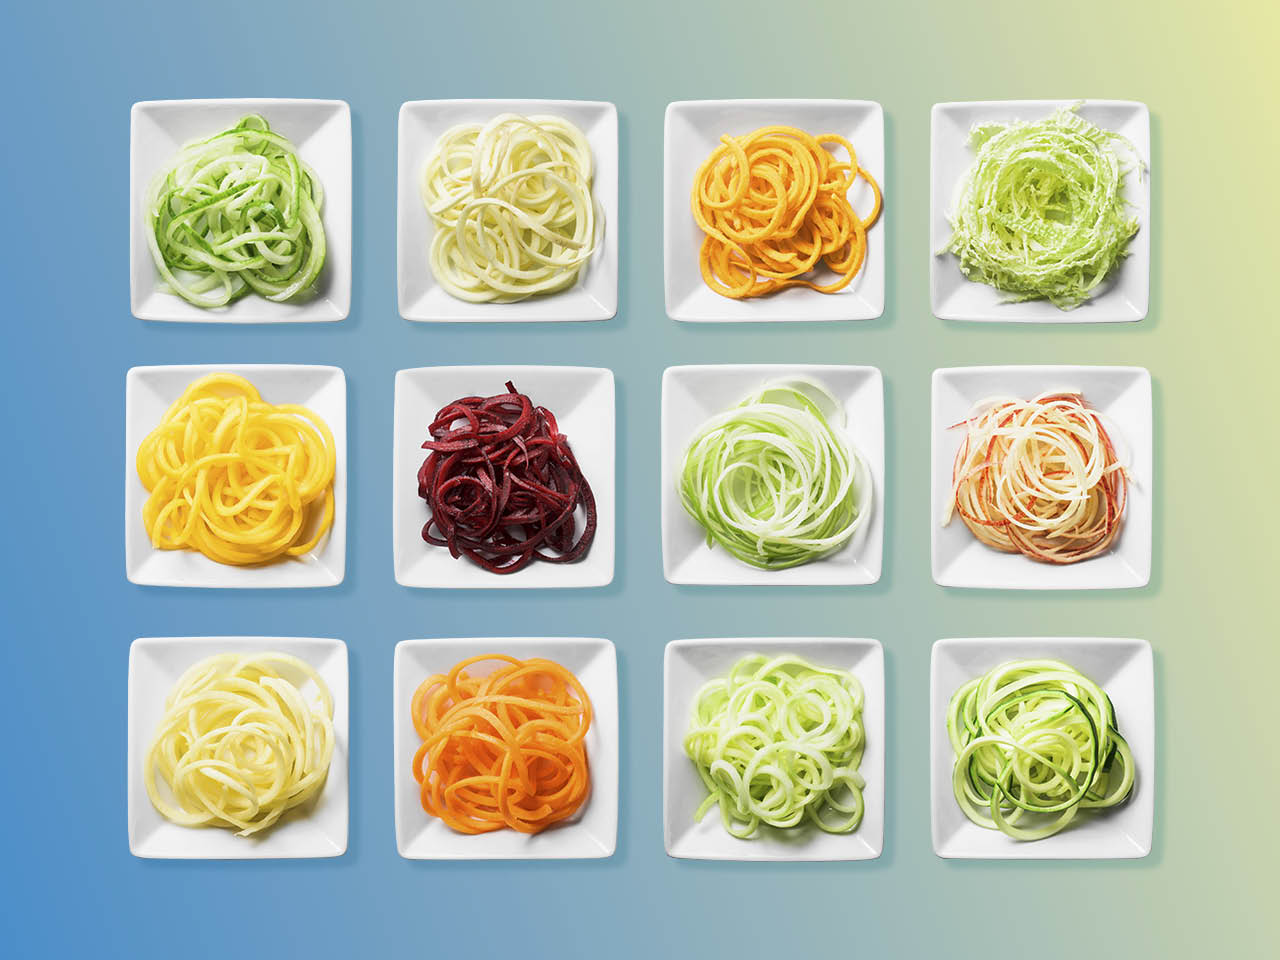 Grocery shopping: Spiralized vegetables on small square white plates